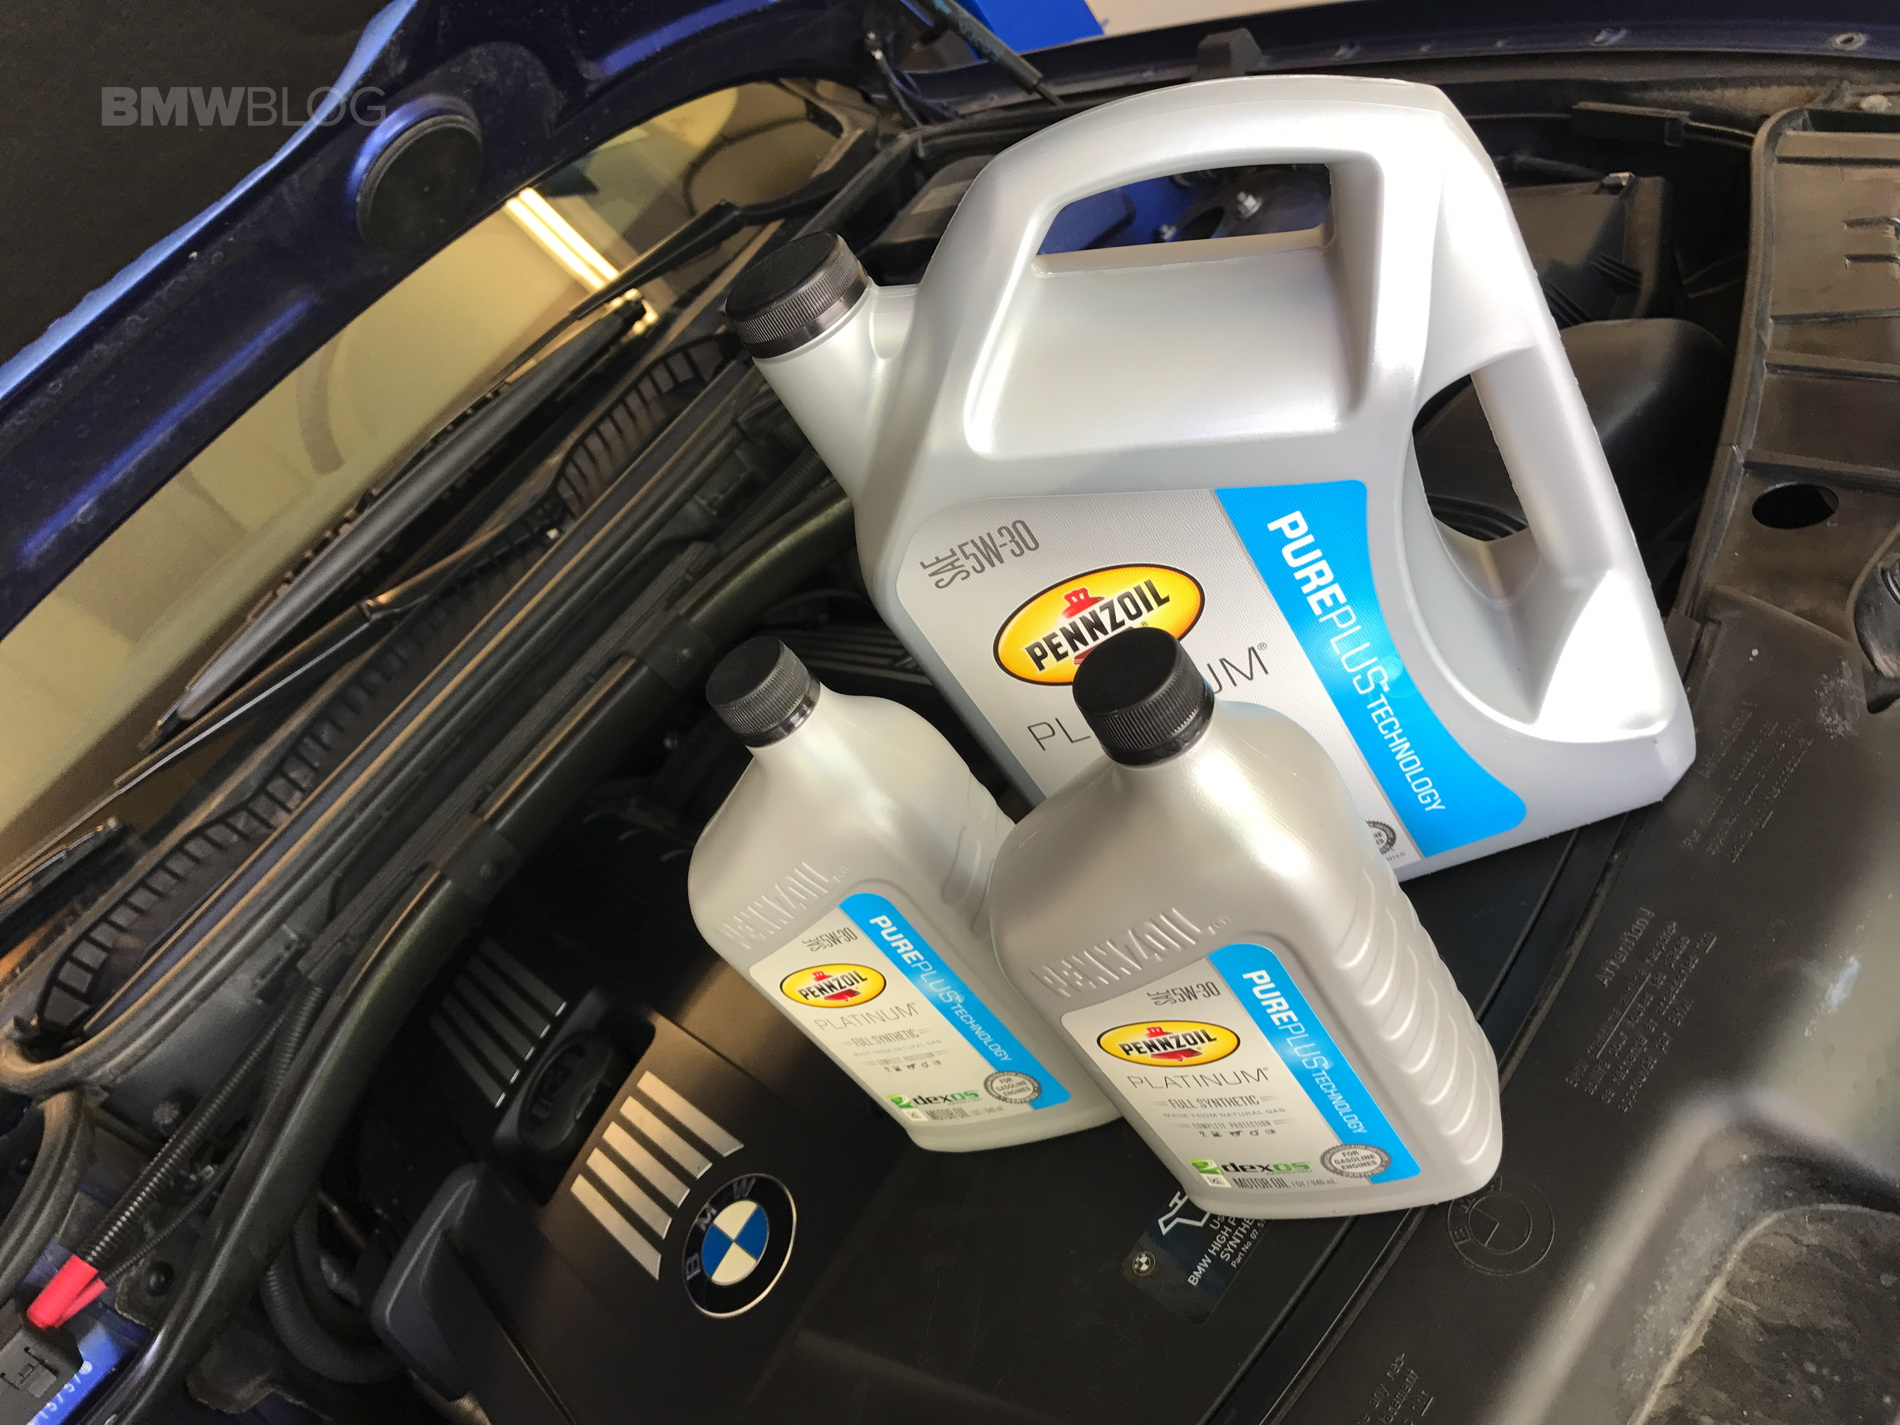 Why Choose Pennzoil For Your Bmw